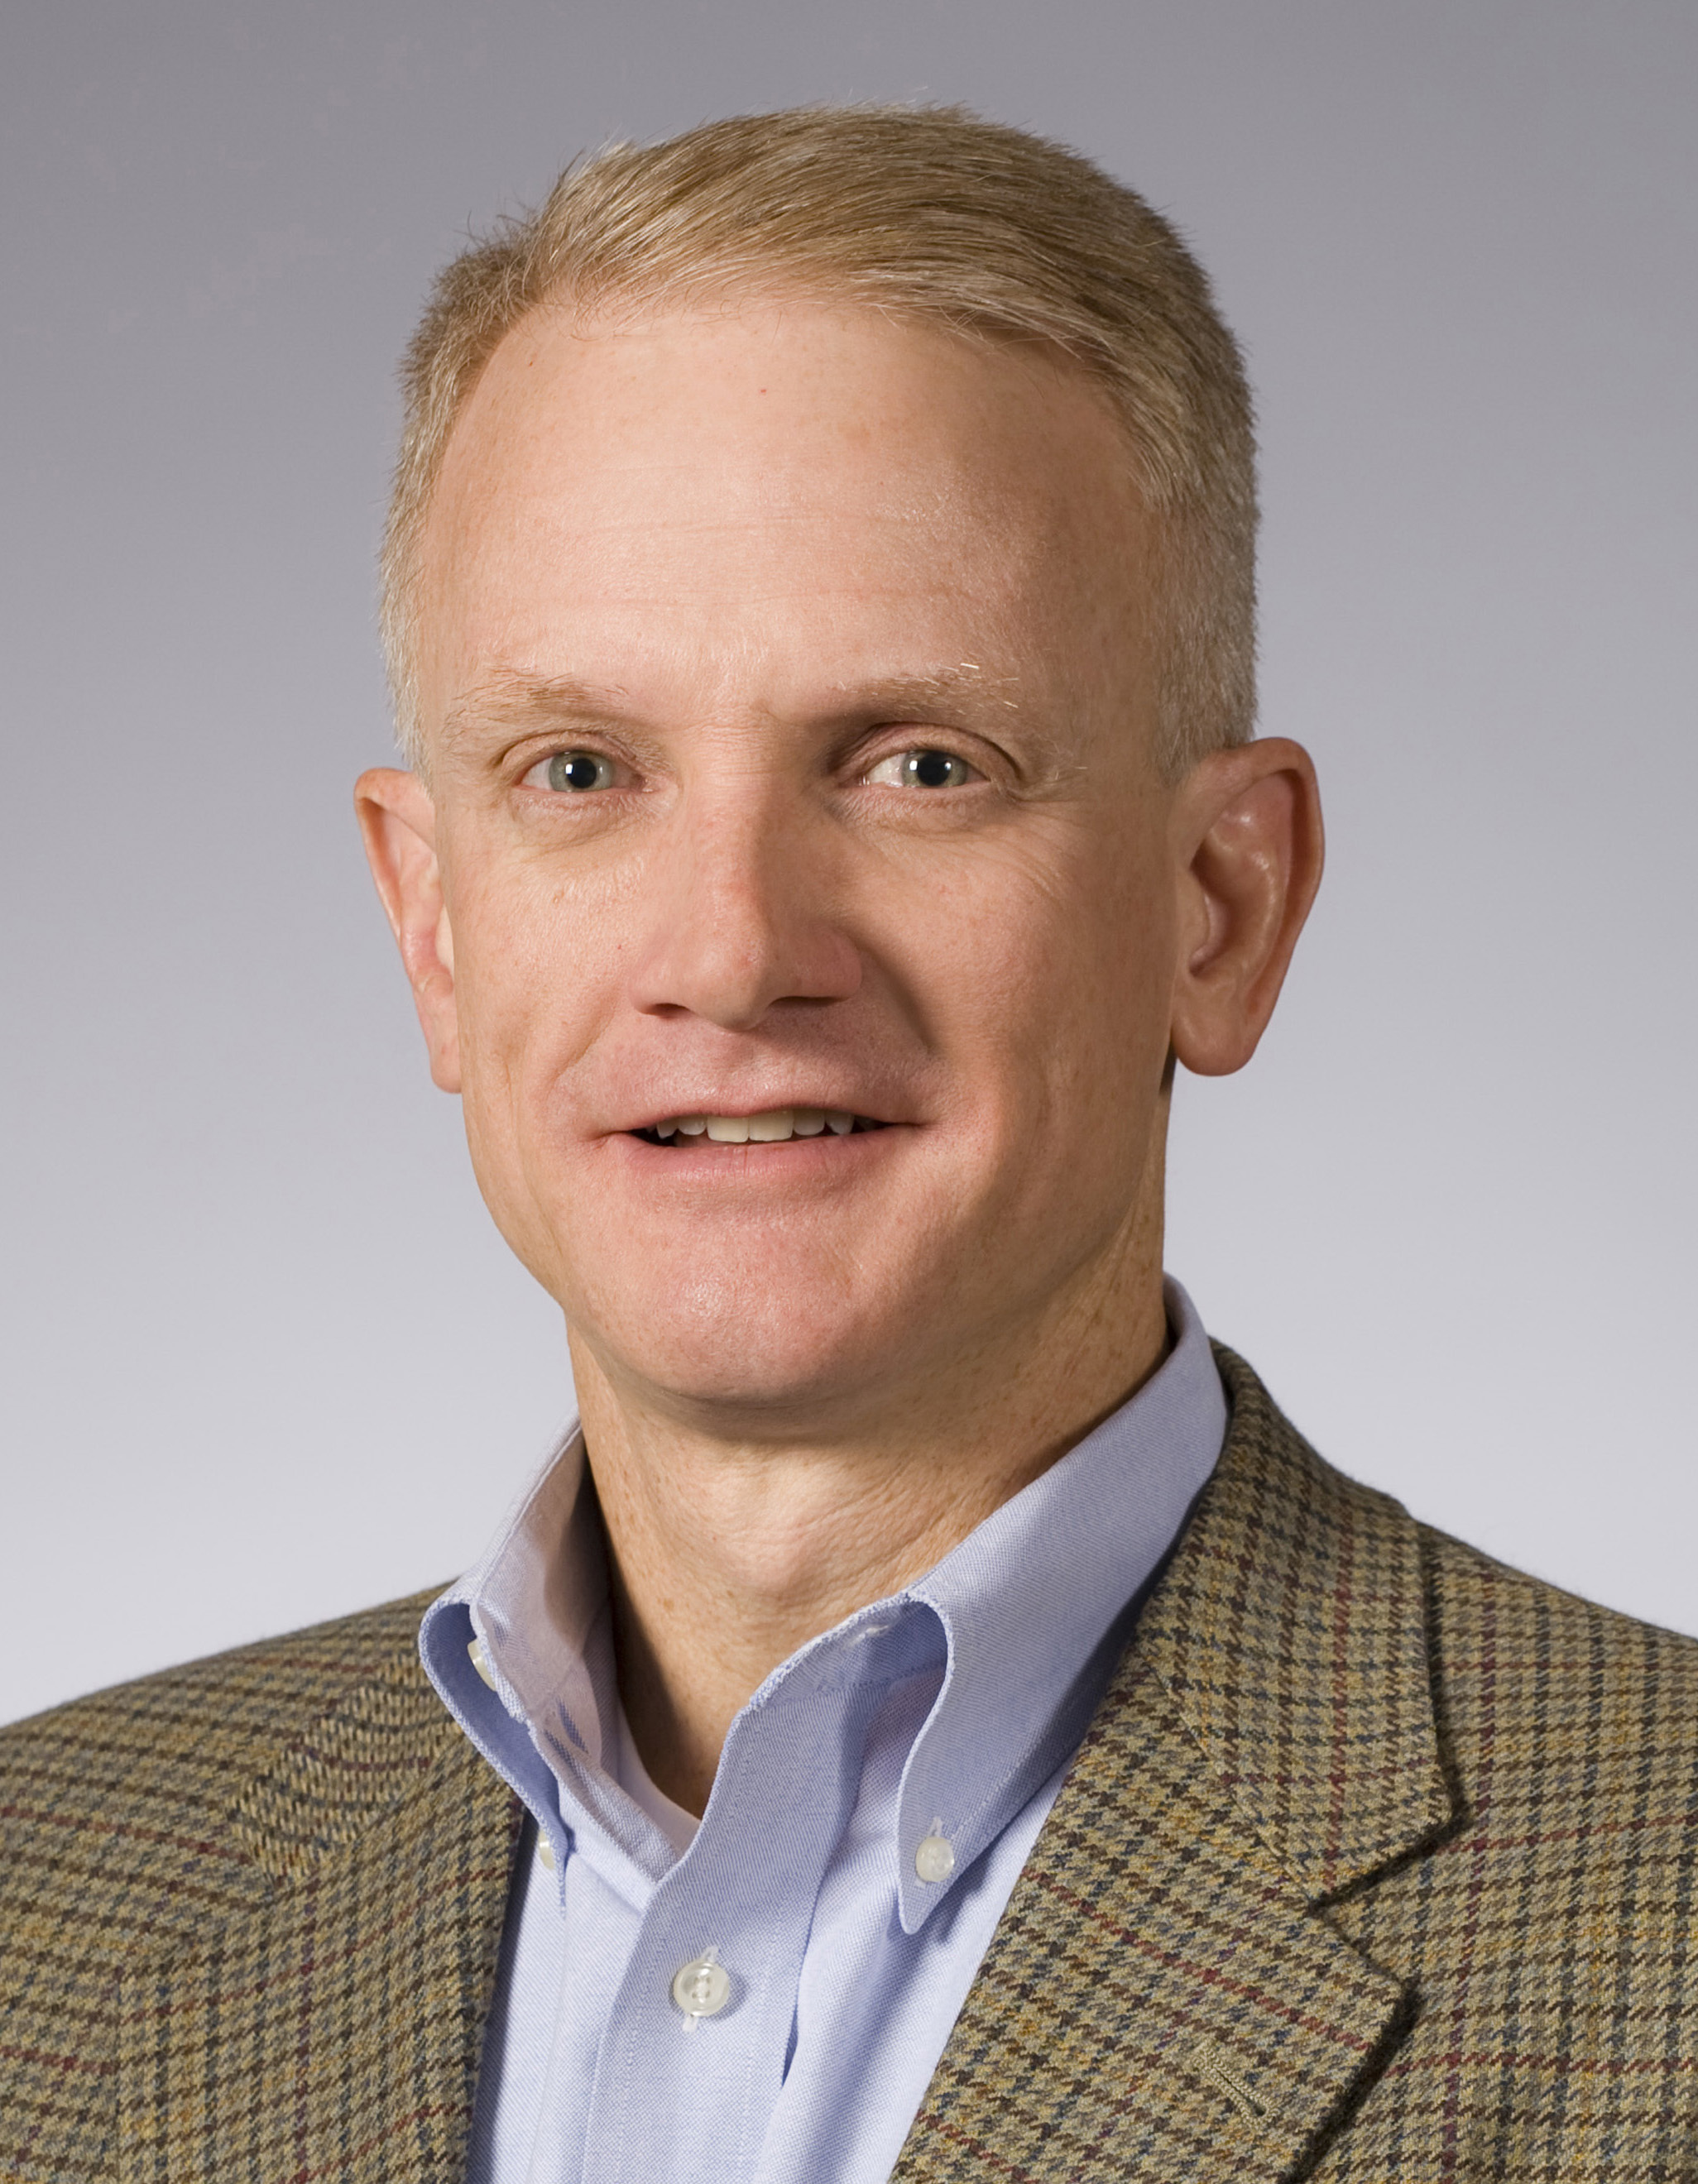 Rory Miller, senior vice president of Williams Partners' Atlantic-Gulf operating area. (Photo: Business Wire)